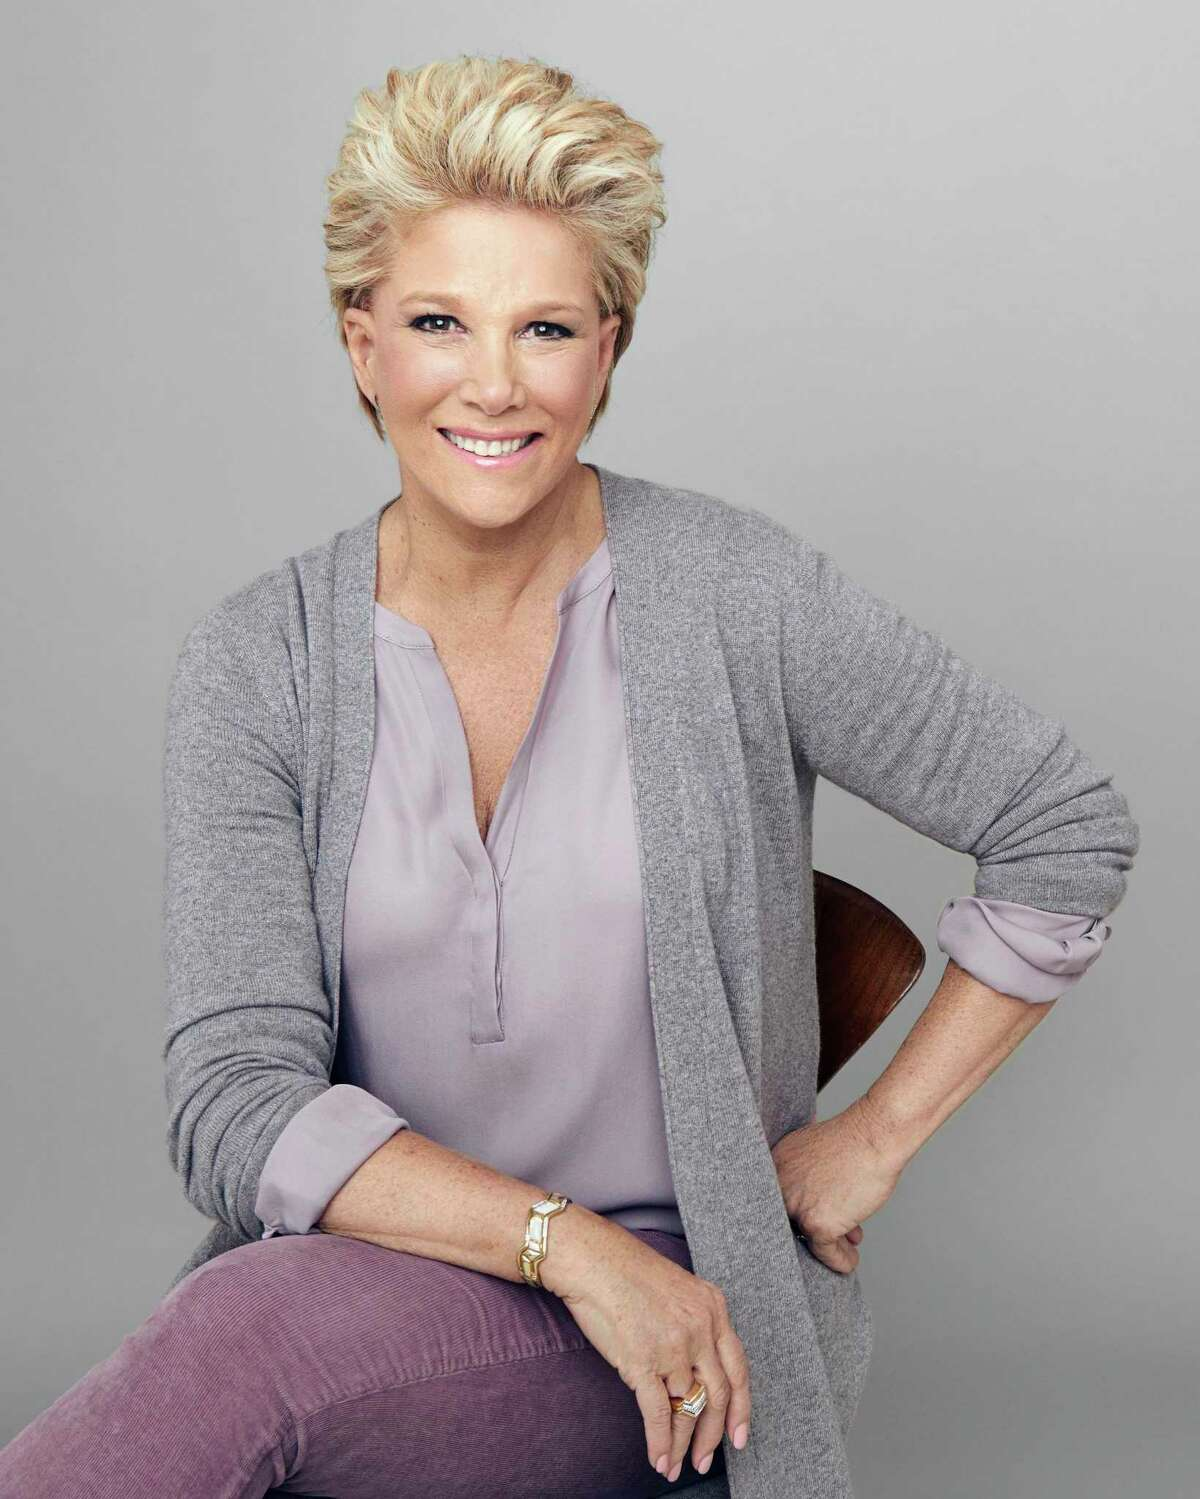 """Greenwich author and former """"Good Morning America"""" co-host Joan Lunden gets candid about aging in her recently published book """"Why Did I Come Into This Room? A Candid Conversation About Aging."""""""